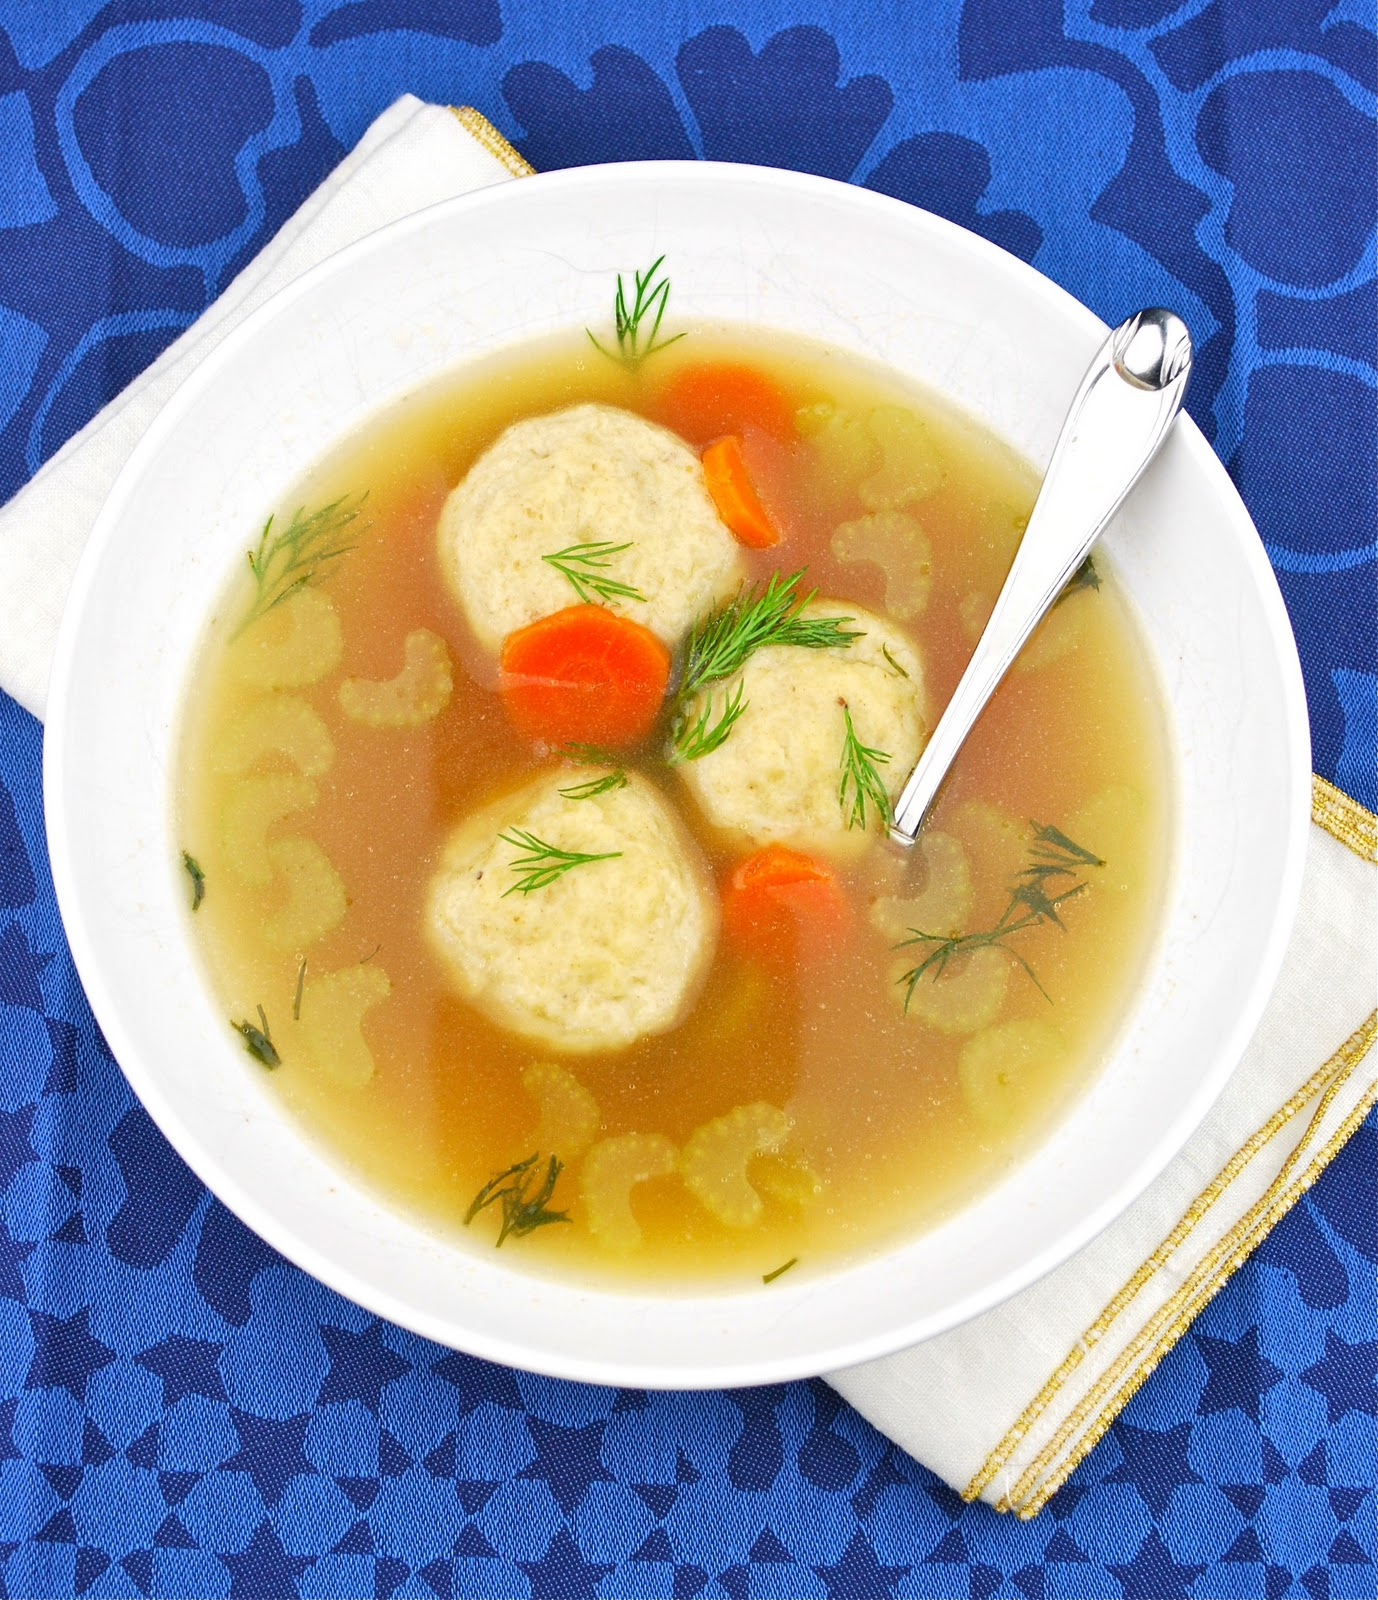 Tasty Trials: Being Happy and Matzo Ball Soup